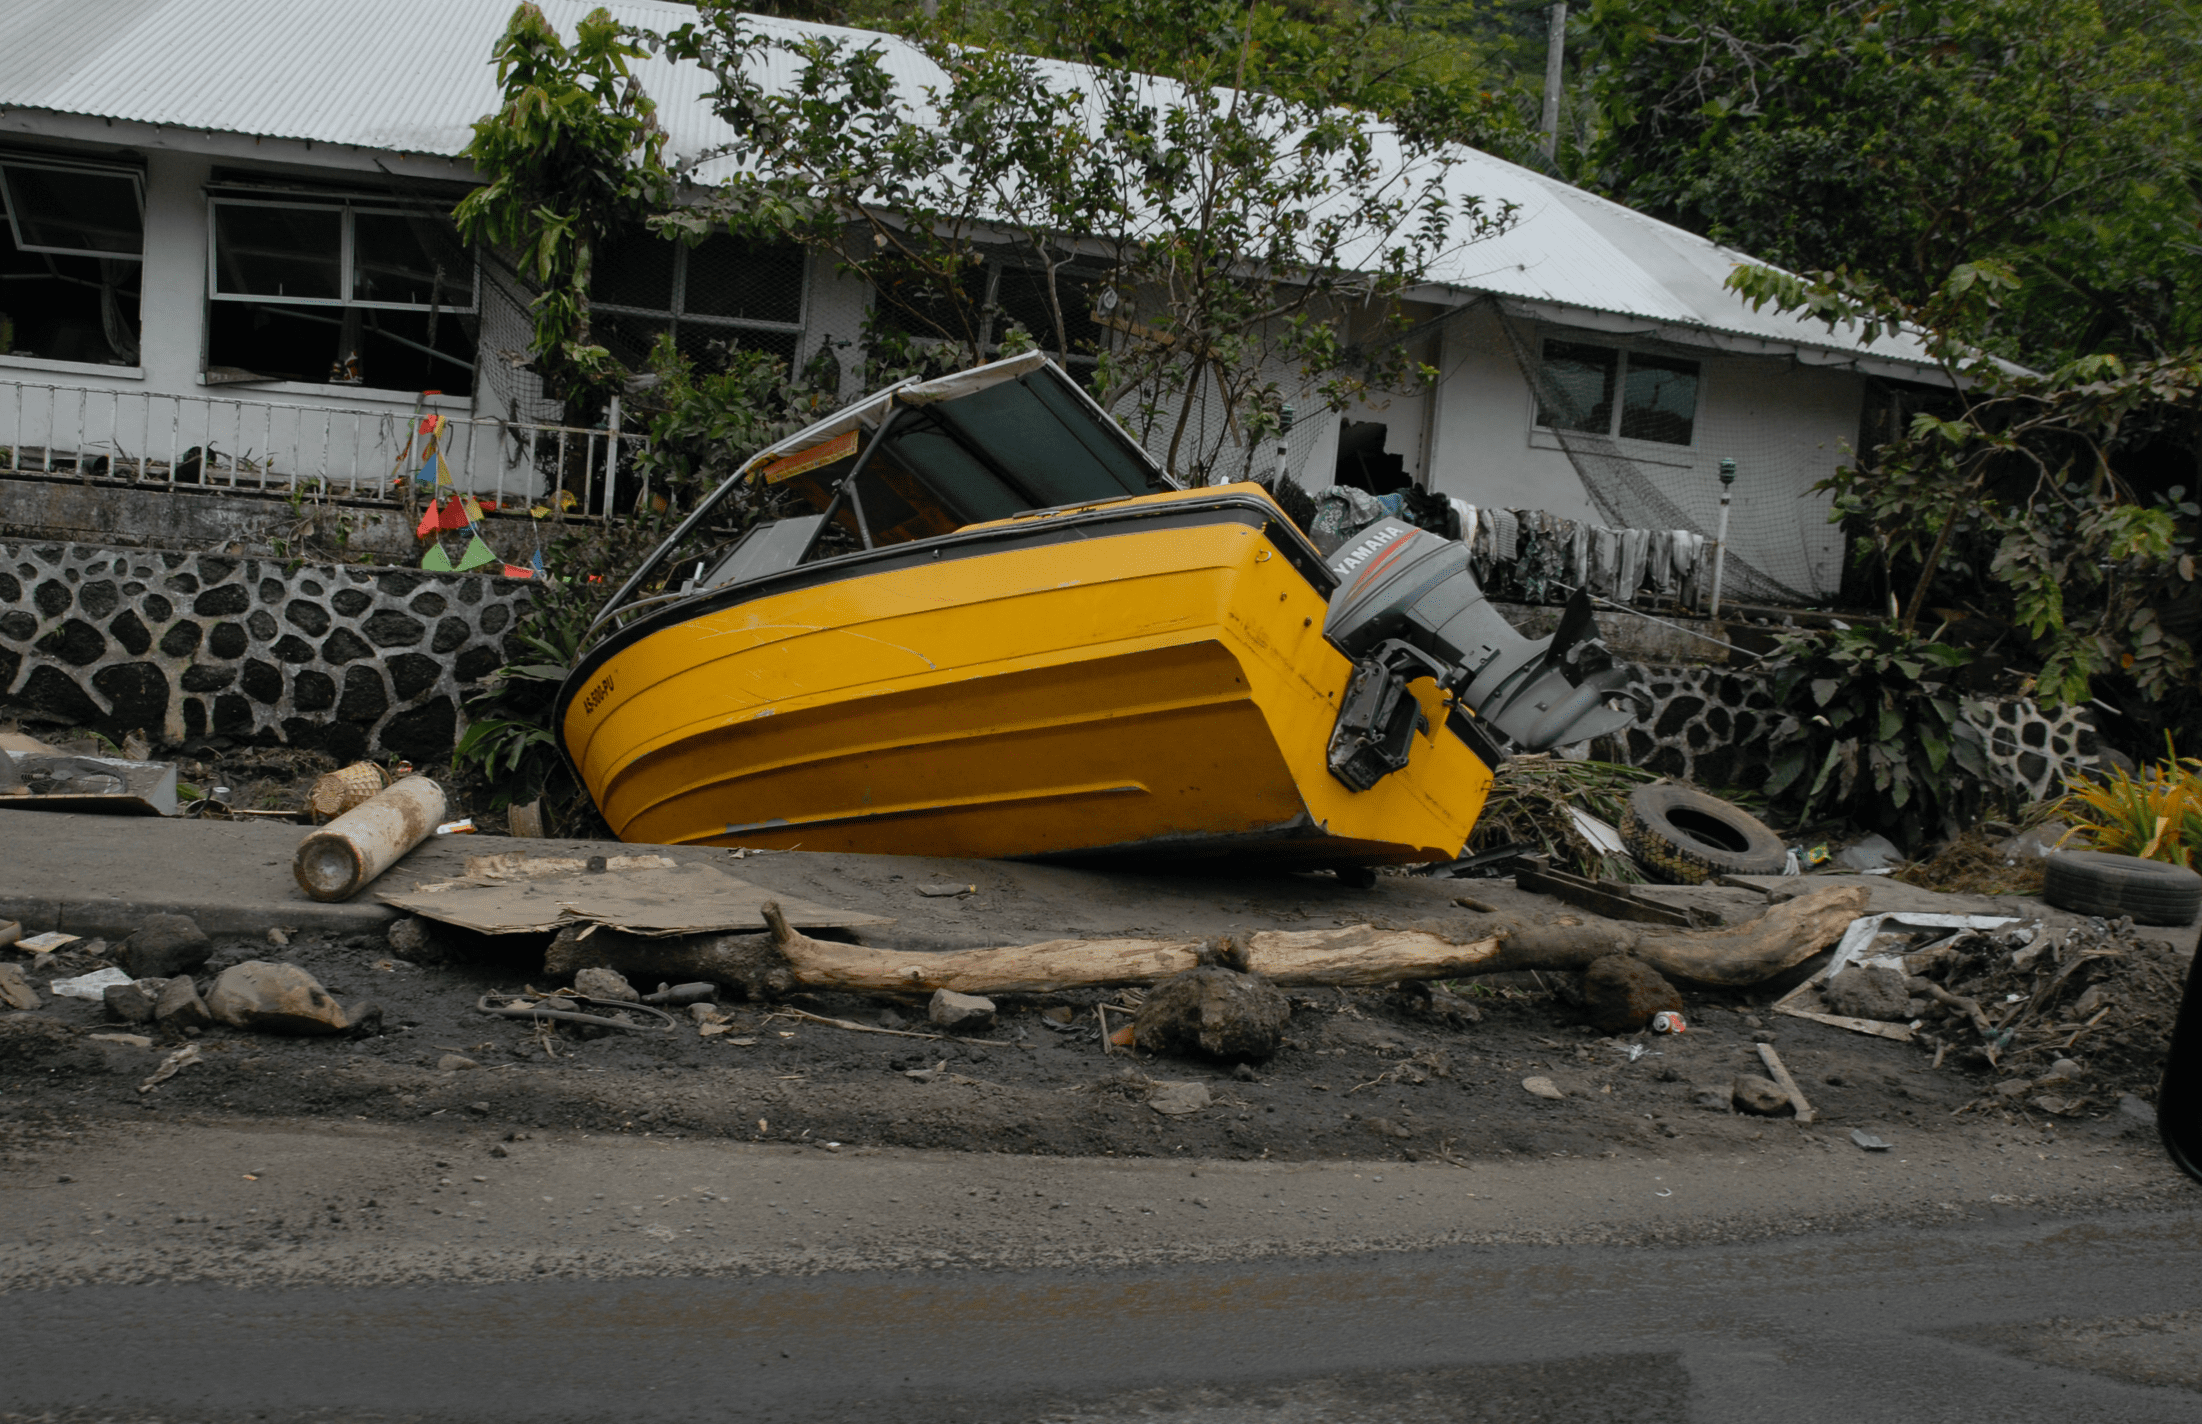 Boat pushed into front yard of home in American Samoa by tsunami in 2009; image by Casey Deshong of FEMA, public domain.